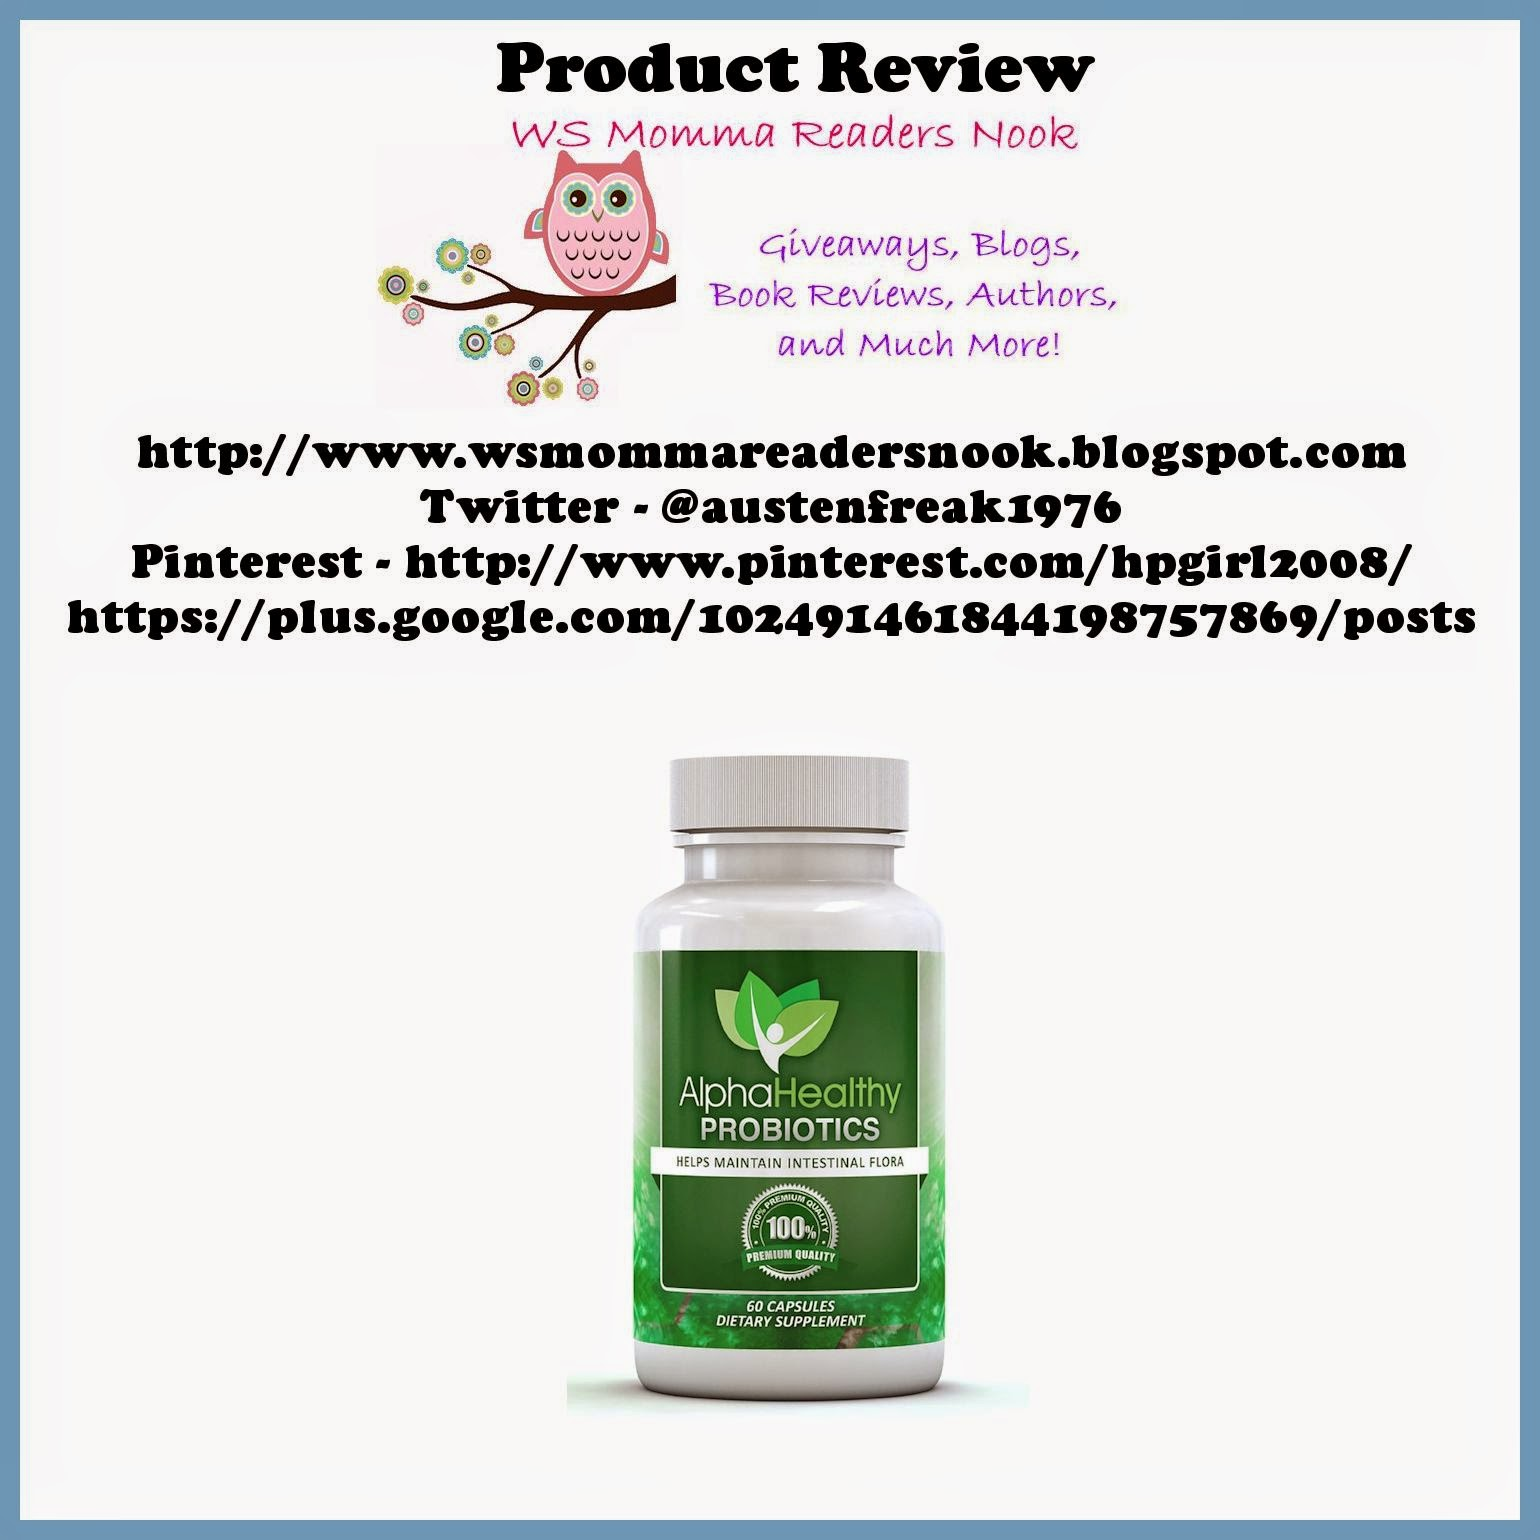 http://www.amazon.com/probiotic-supplement-lactobacillus-acidophilus-dramatically/dp/b00ggsdwh8